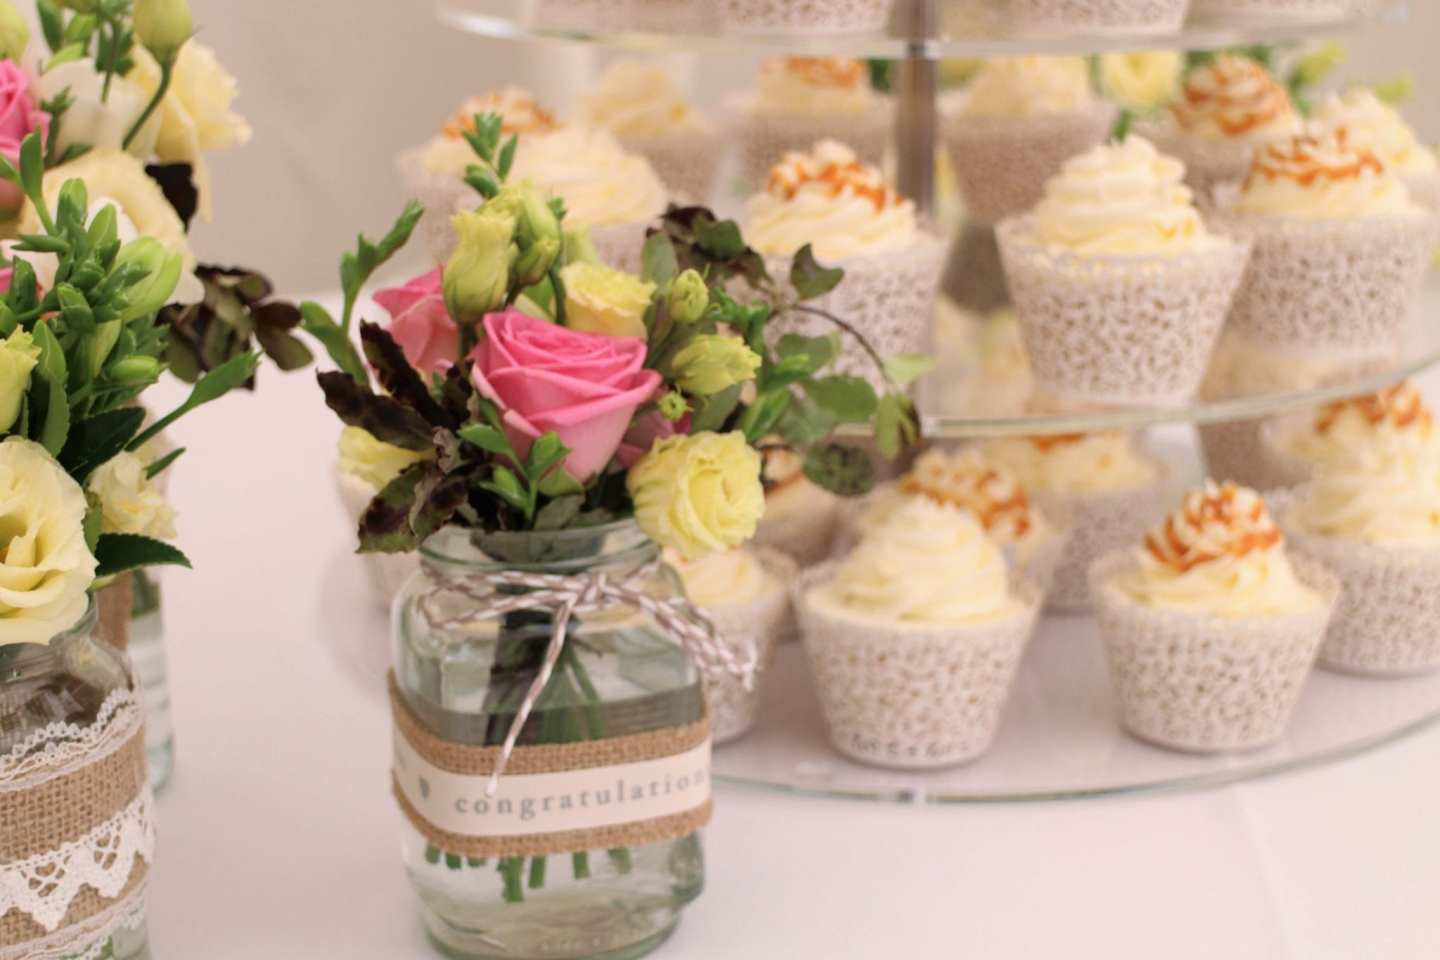 How To Set Up A Cupcake Tower